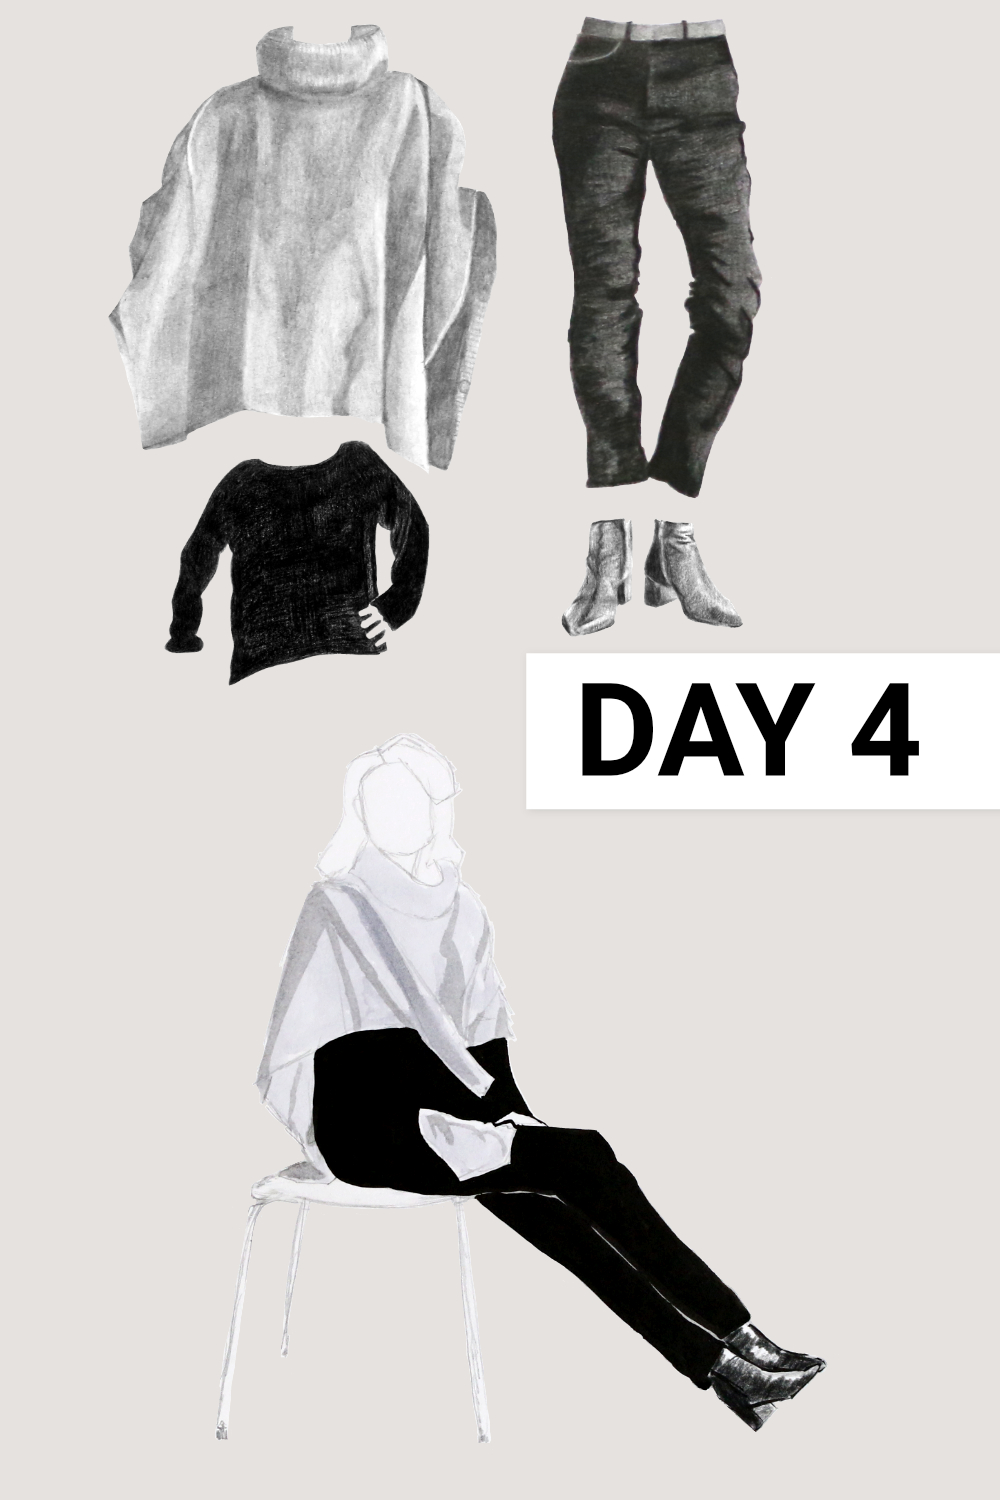 Day 4: Black boatneck ( Everlane , Black Cashmere Rib Boatneck, size M), black jeans ( Everlane , Authentic Stretch High-Rise Cigarette, size 31), black boots ( Everlane , The Boss Boot), grey poncho ( Seasalt , past collection, wool)    Drawing a Capsule Wardrobe , by The Daily Atelier #10x10Friends #Winter10x10 #StyleBee10x10